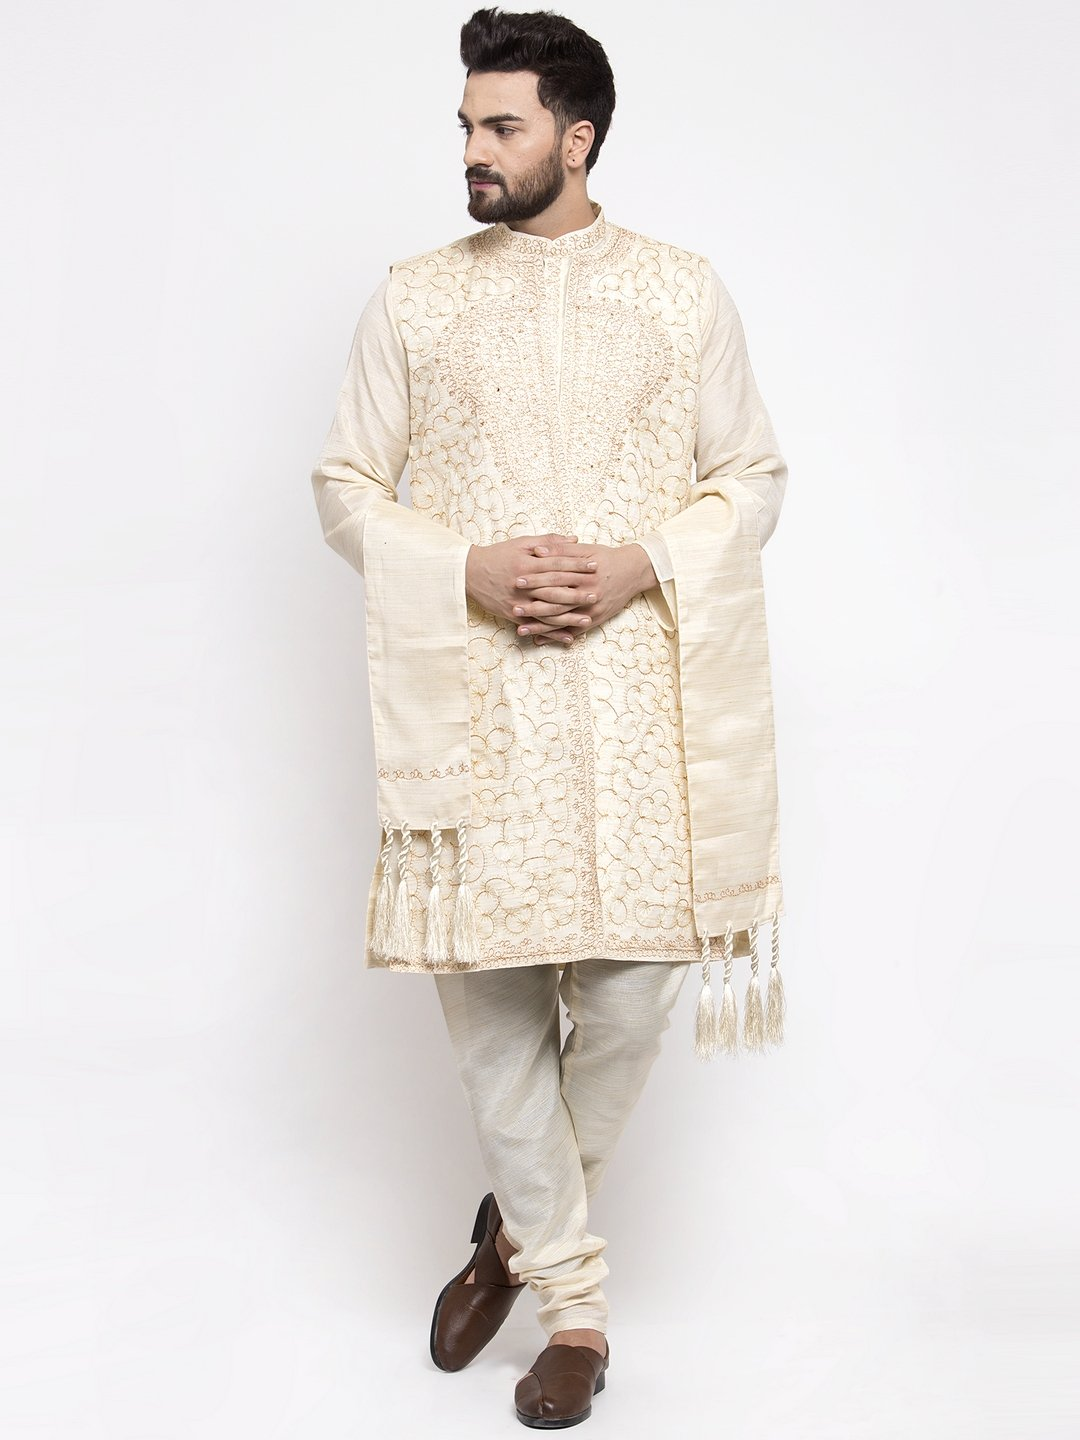 Men's White Embroidered Kurta Pajama, Jacket, and Scarf Set